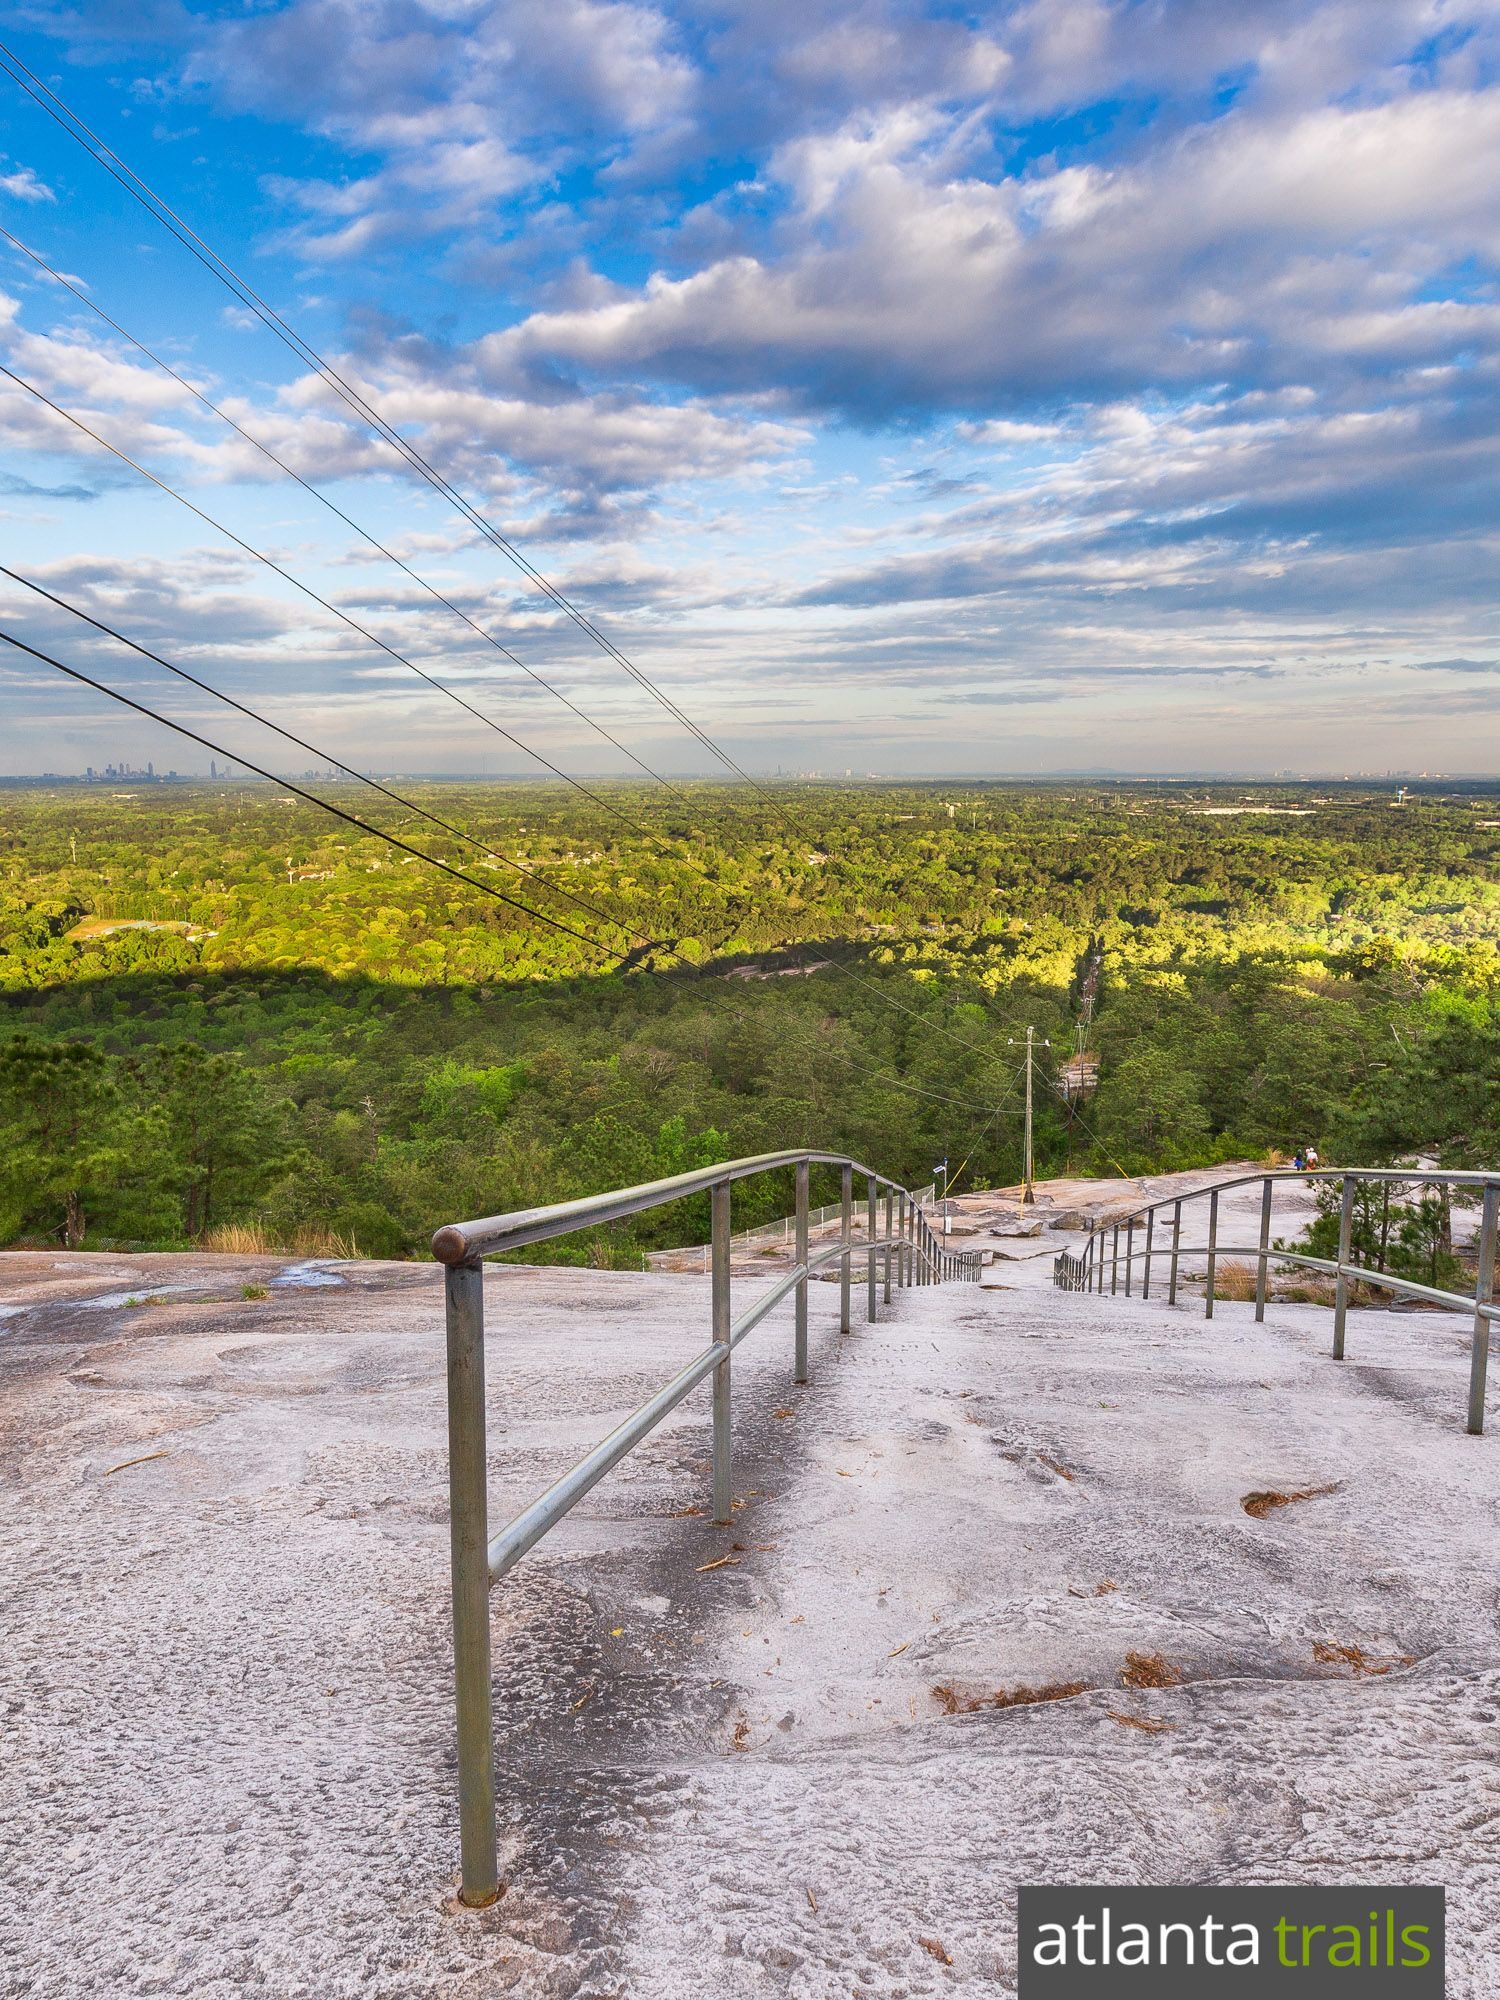 Hike the Stone Mountain Trail near Atlanta, climbing steep sections of the iconic, domed mountain to beautiful Atlanta skyline views